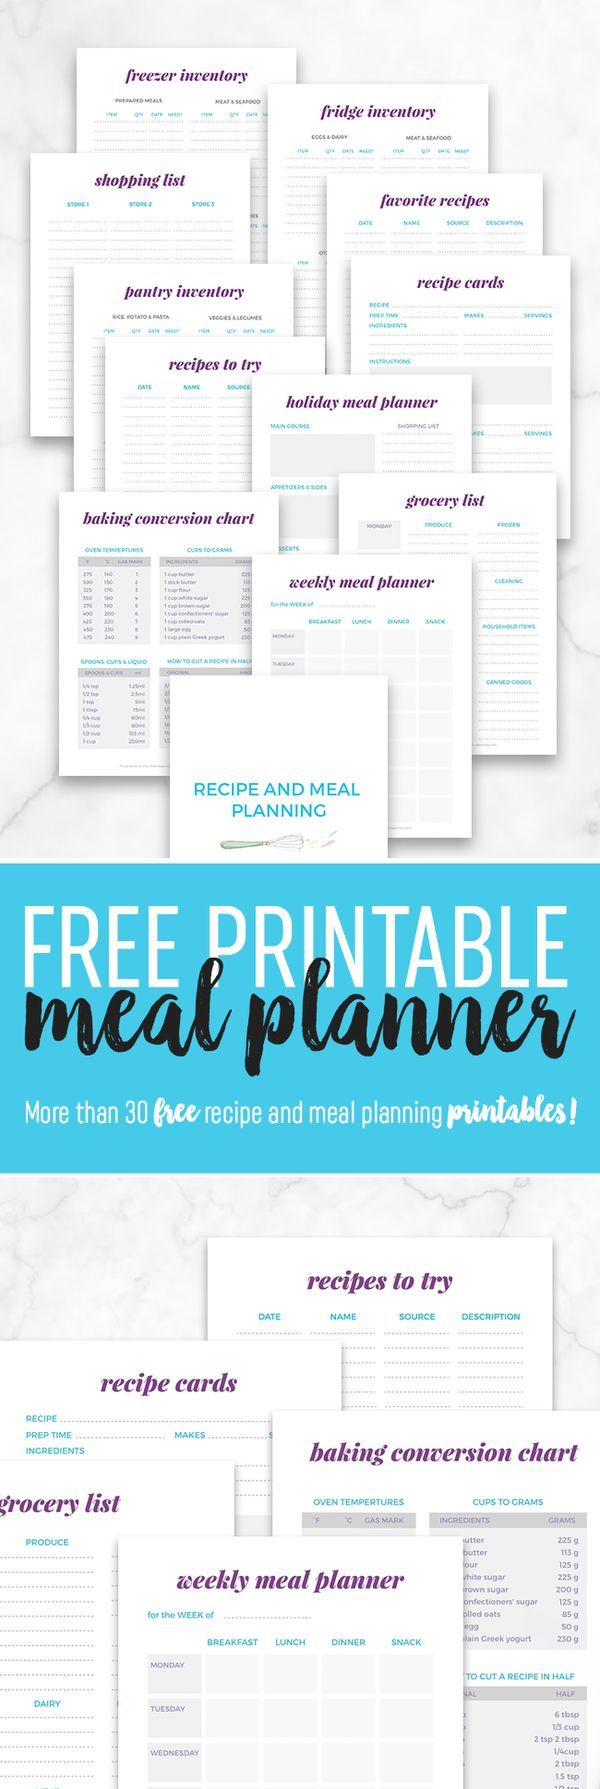 Free Printable Meal Planner - You'll love this free meal planner printable to help organize recipes, shopping and food inventory!